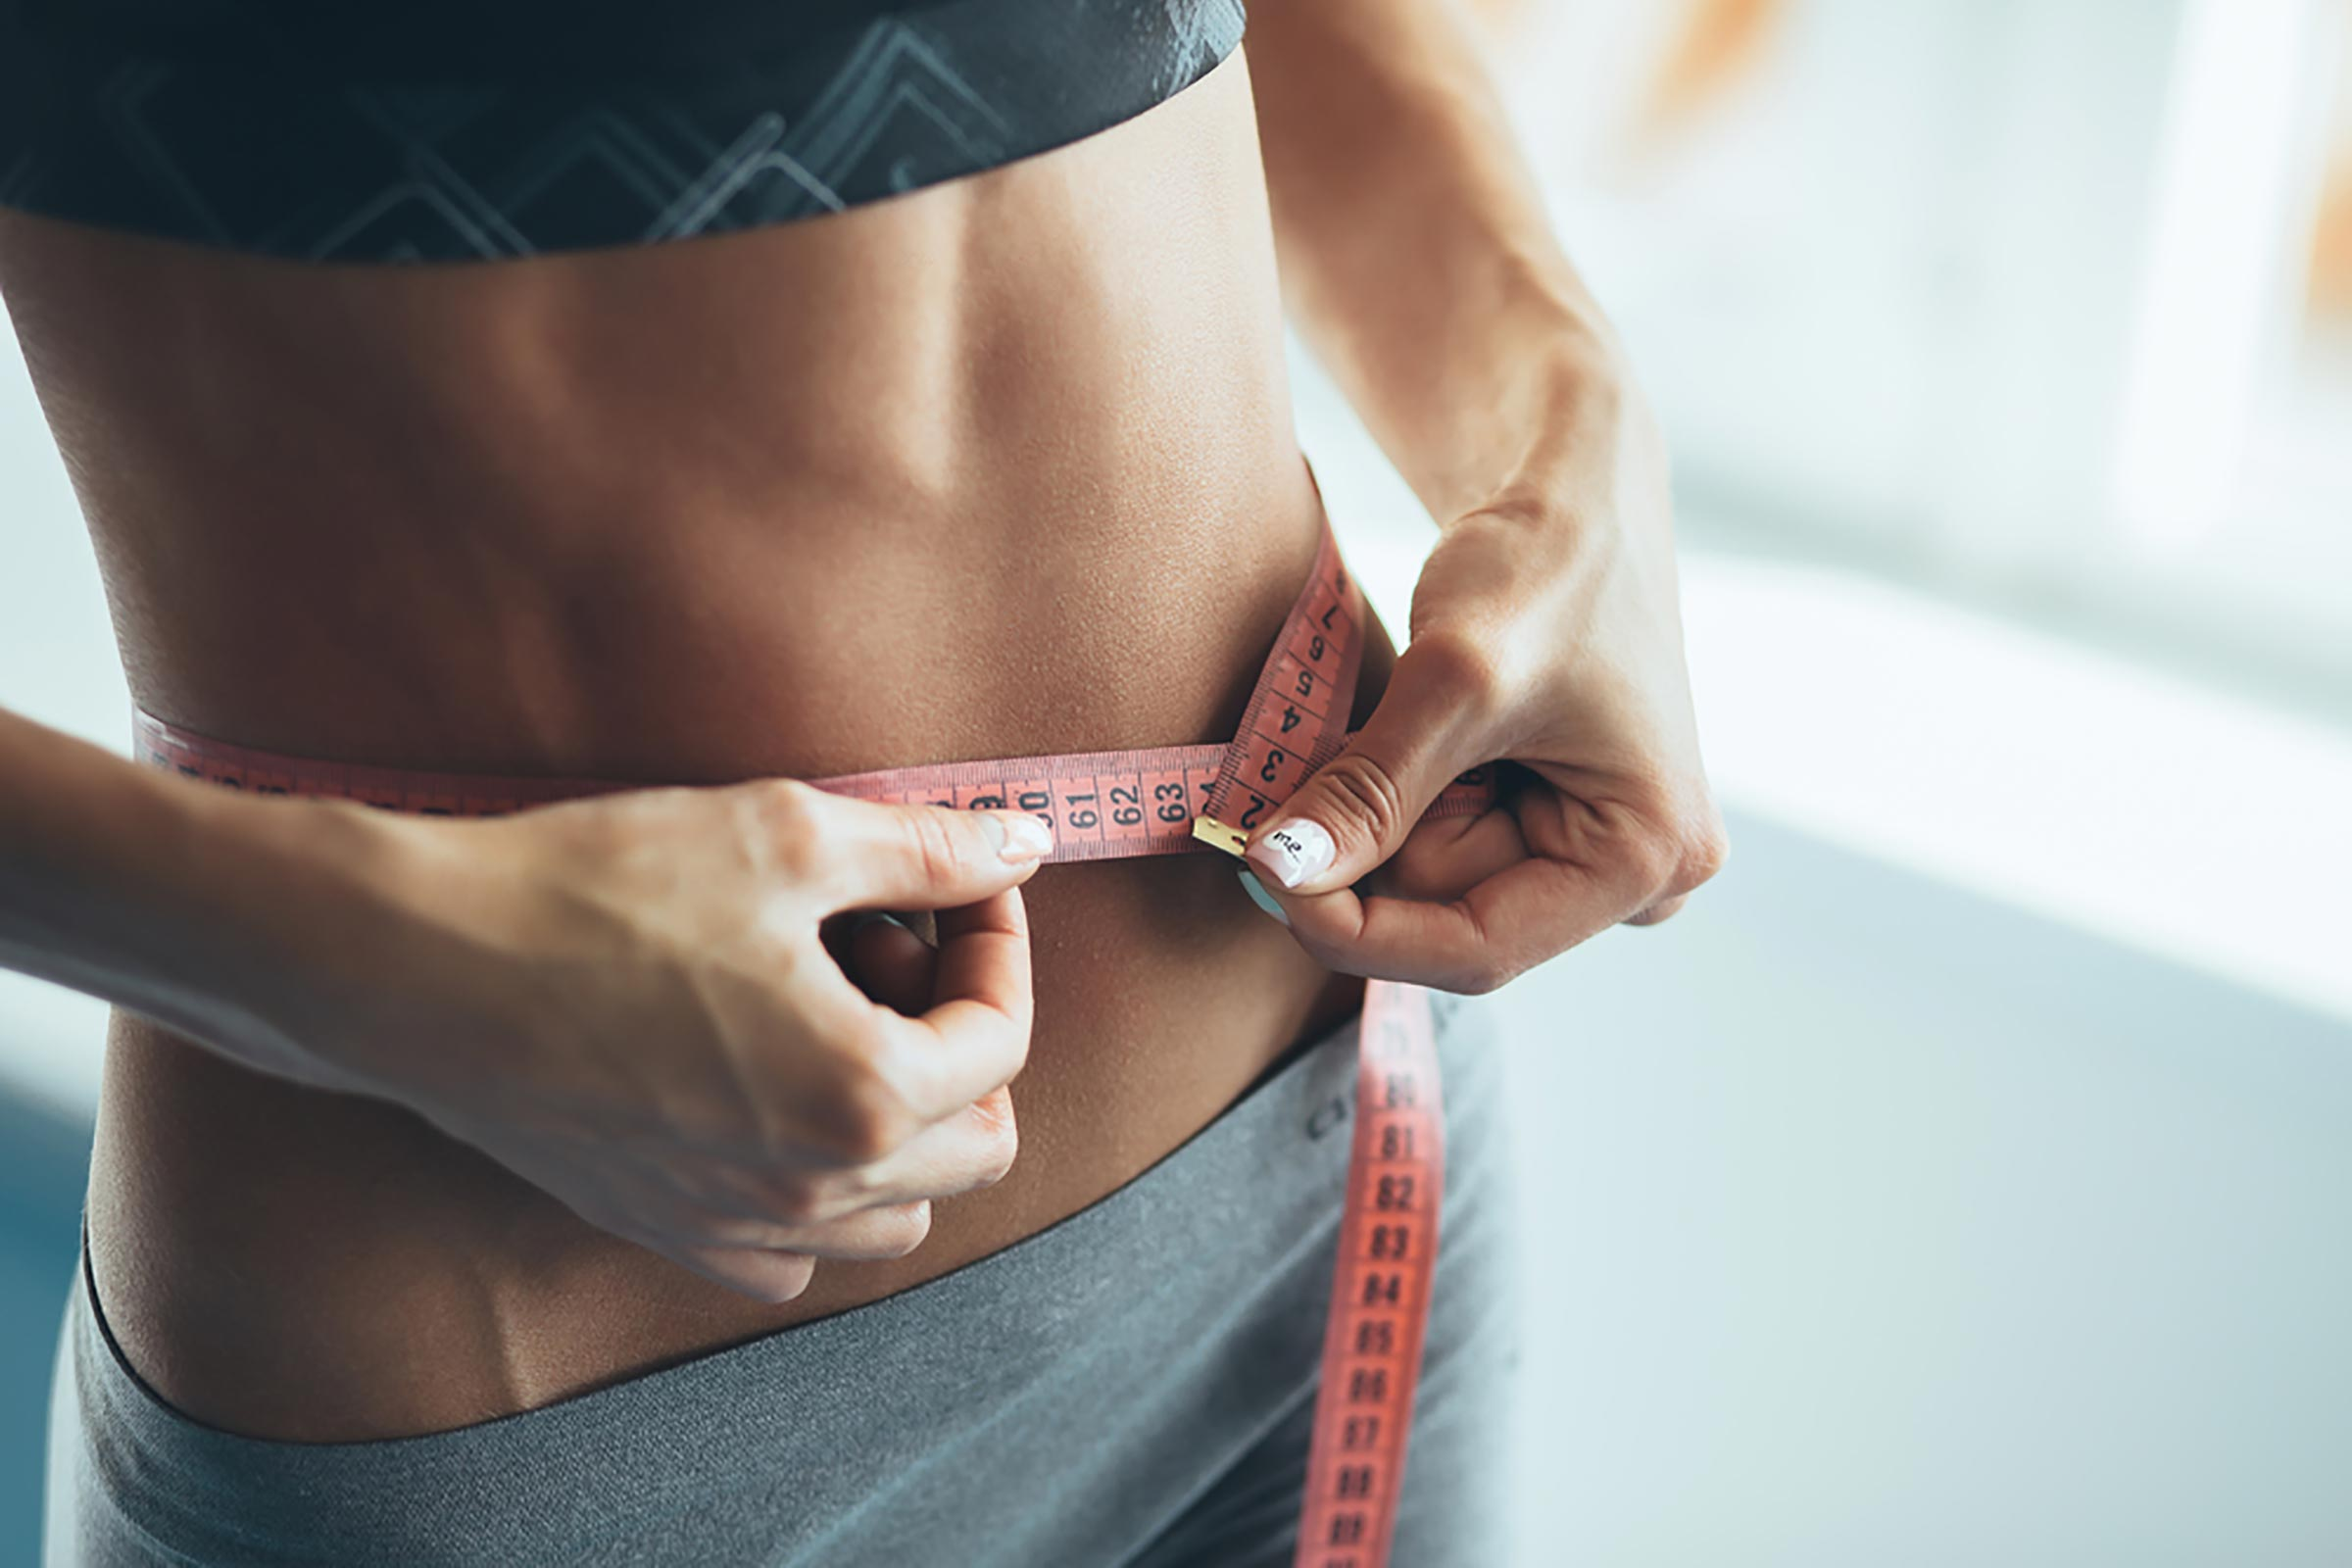 5 Ways To Lose a Few Pounds Without Really Trying